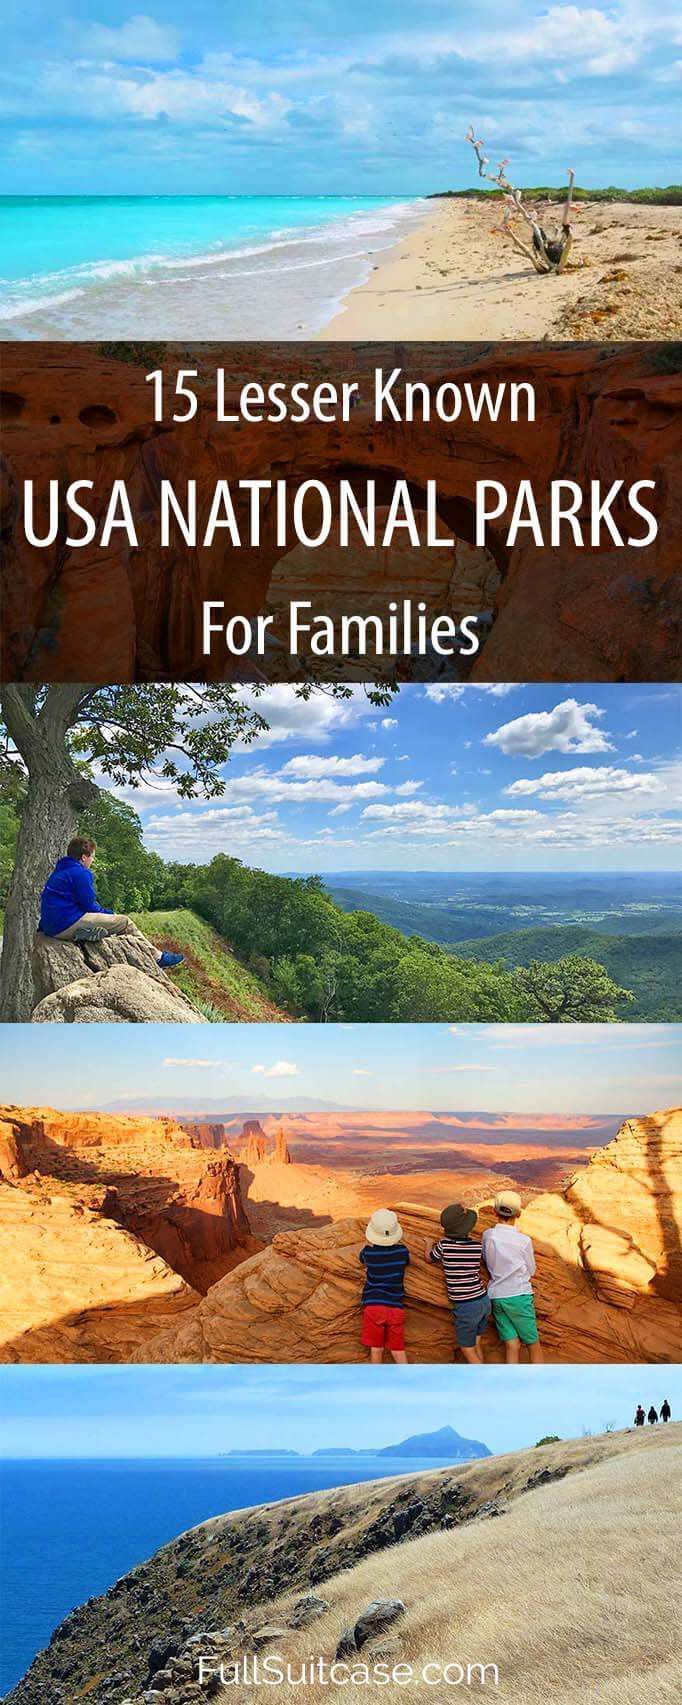 15 lesser known u.s. national parks - family vacation ideas | usa